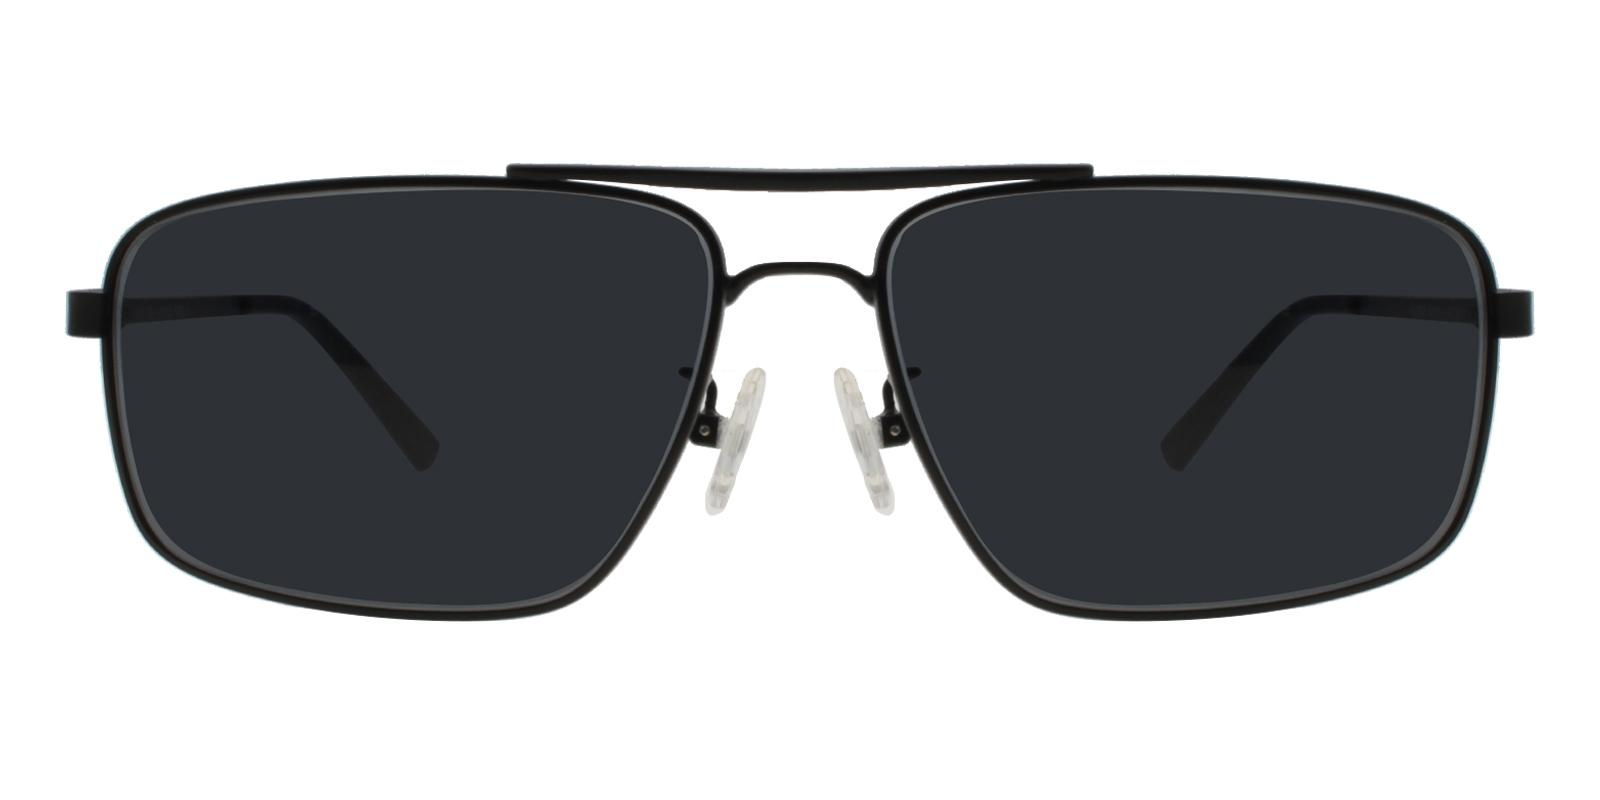 Ethan Black Metal NosePads , Sunglasses Frames from ABBE Glasses